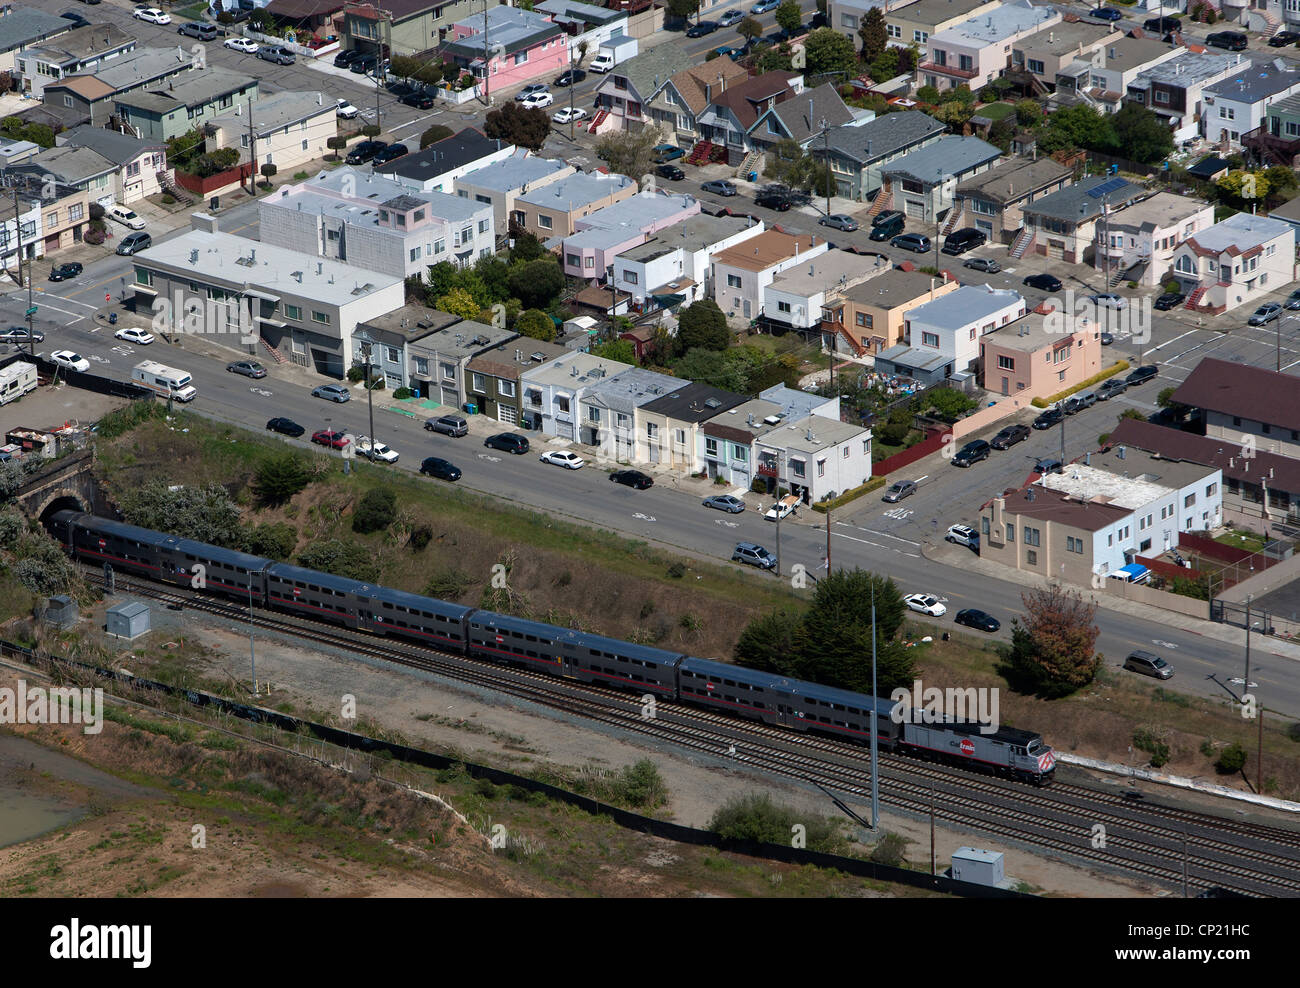 aerial photograph Caltrain emerges from tunnel San Francisco, California - Stock Image